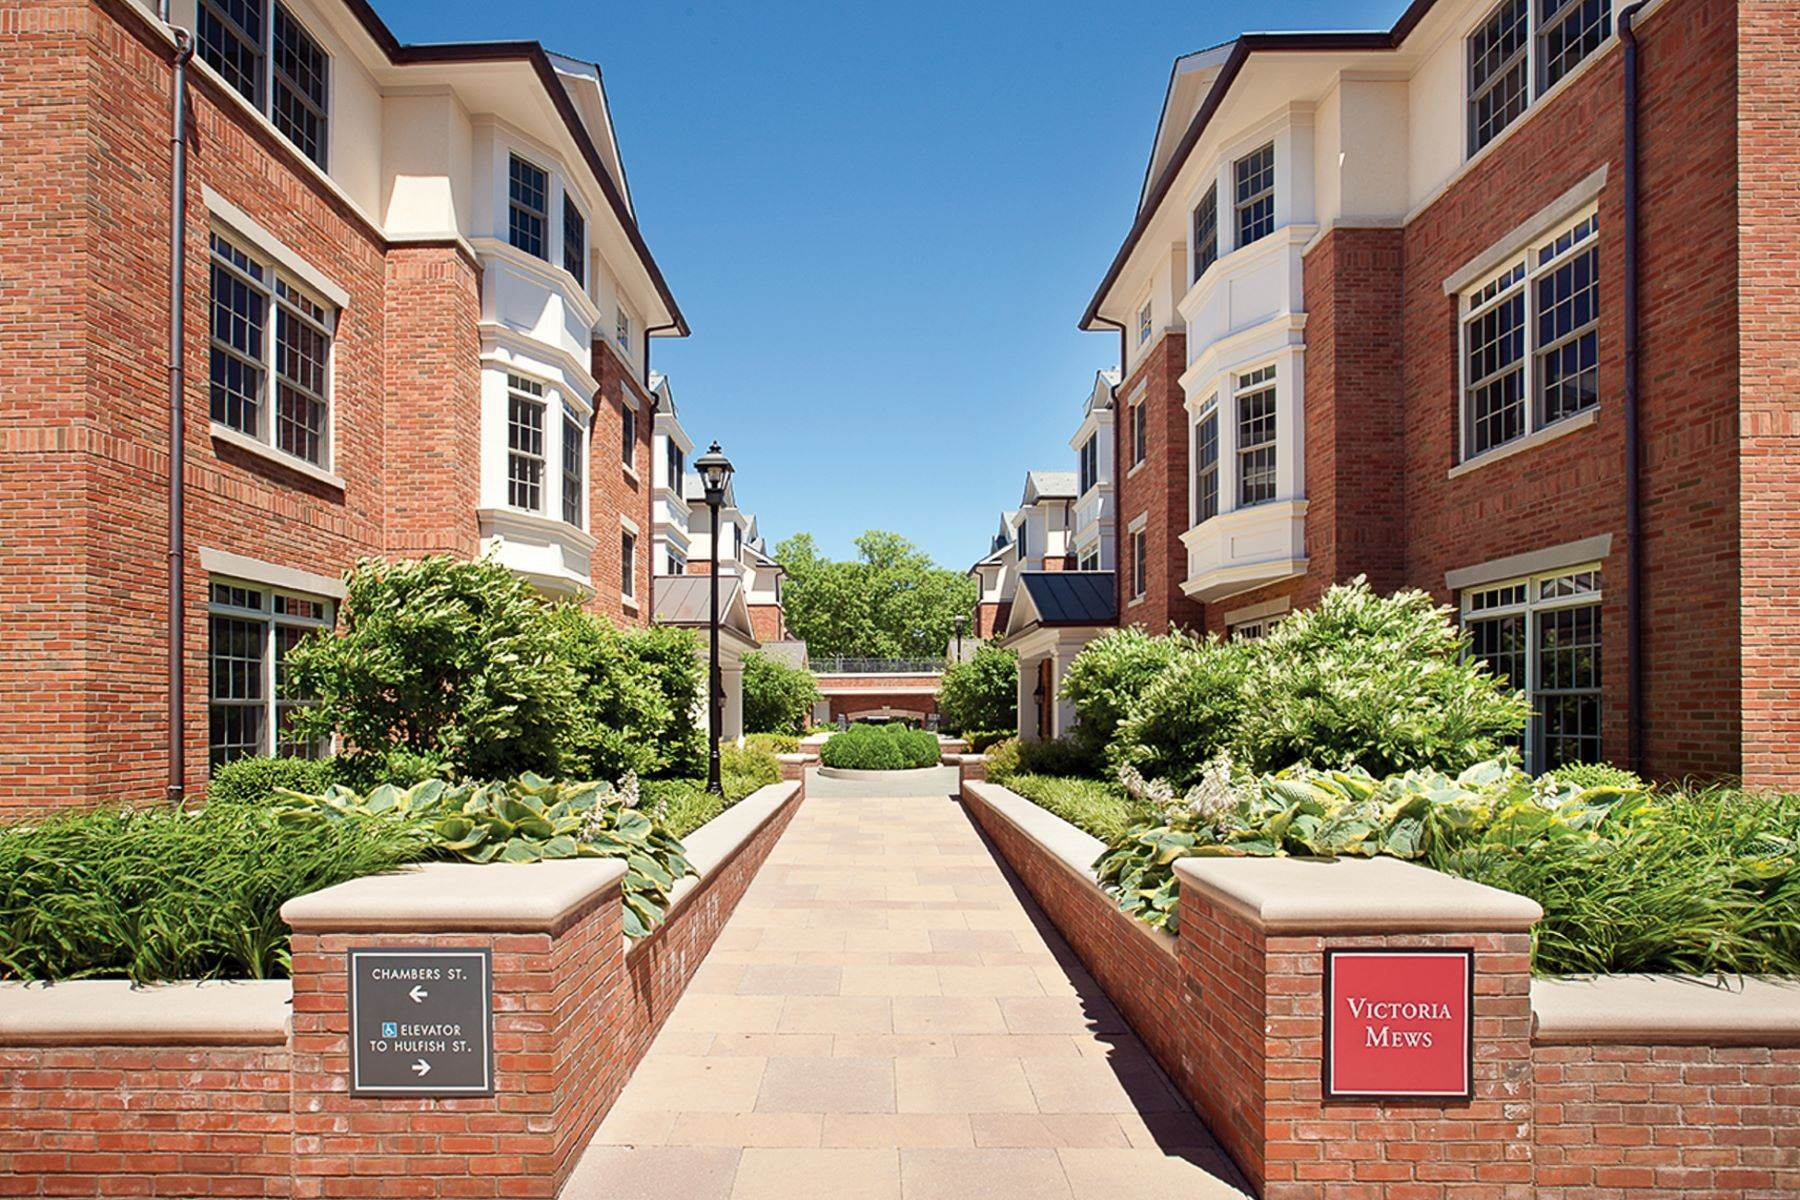 Condominiums for Sale at Luxury Condominium in Downtown Princeton 113 Victoria Mews, Princeton, New Jersey 08542 United States